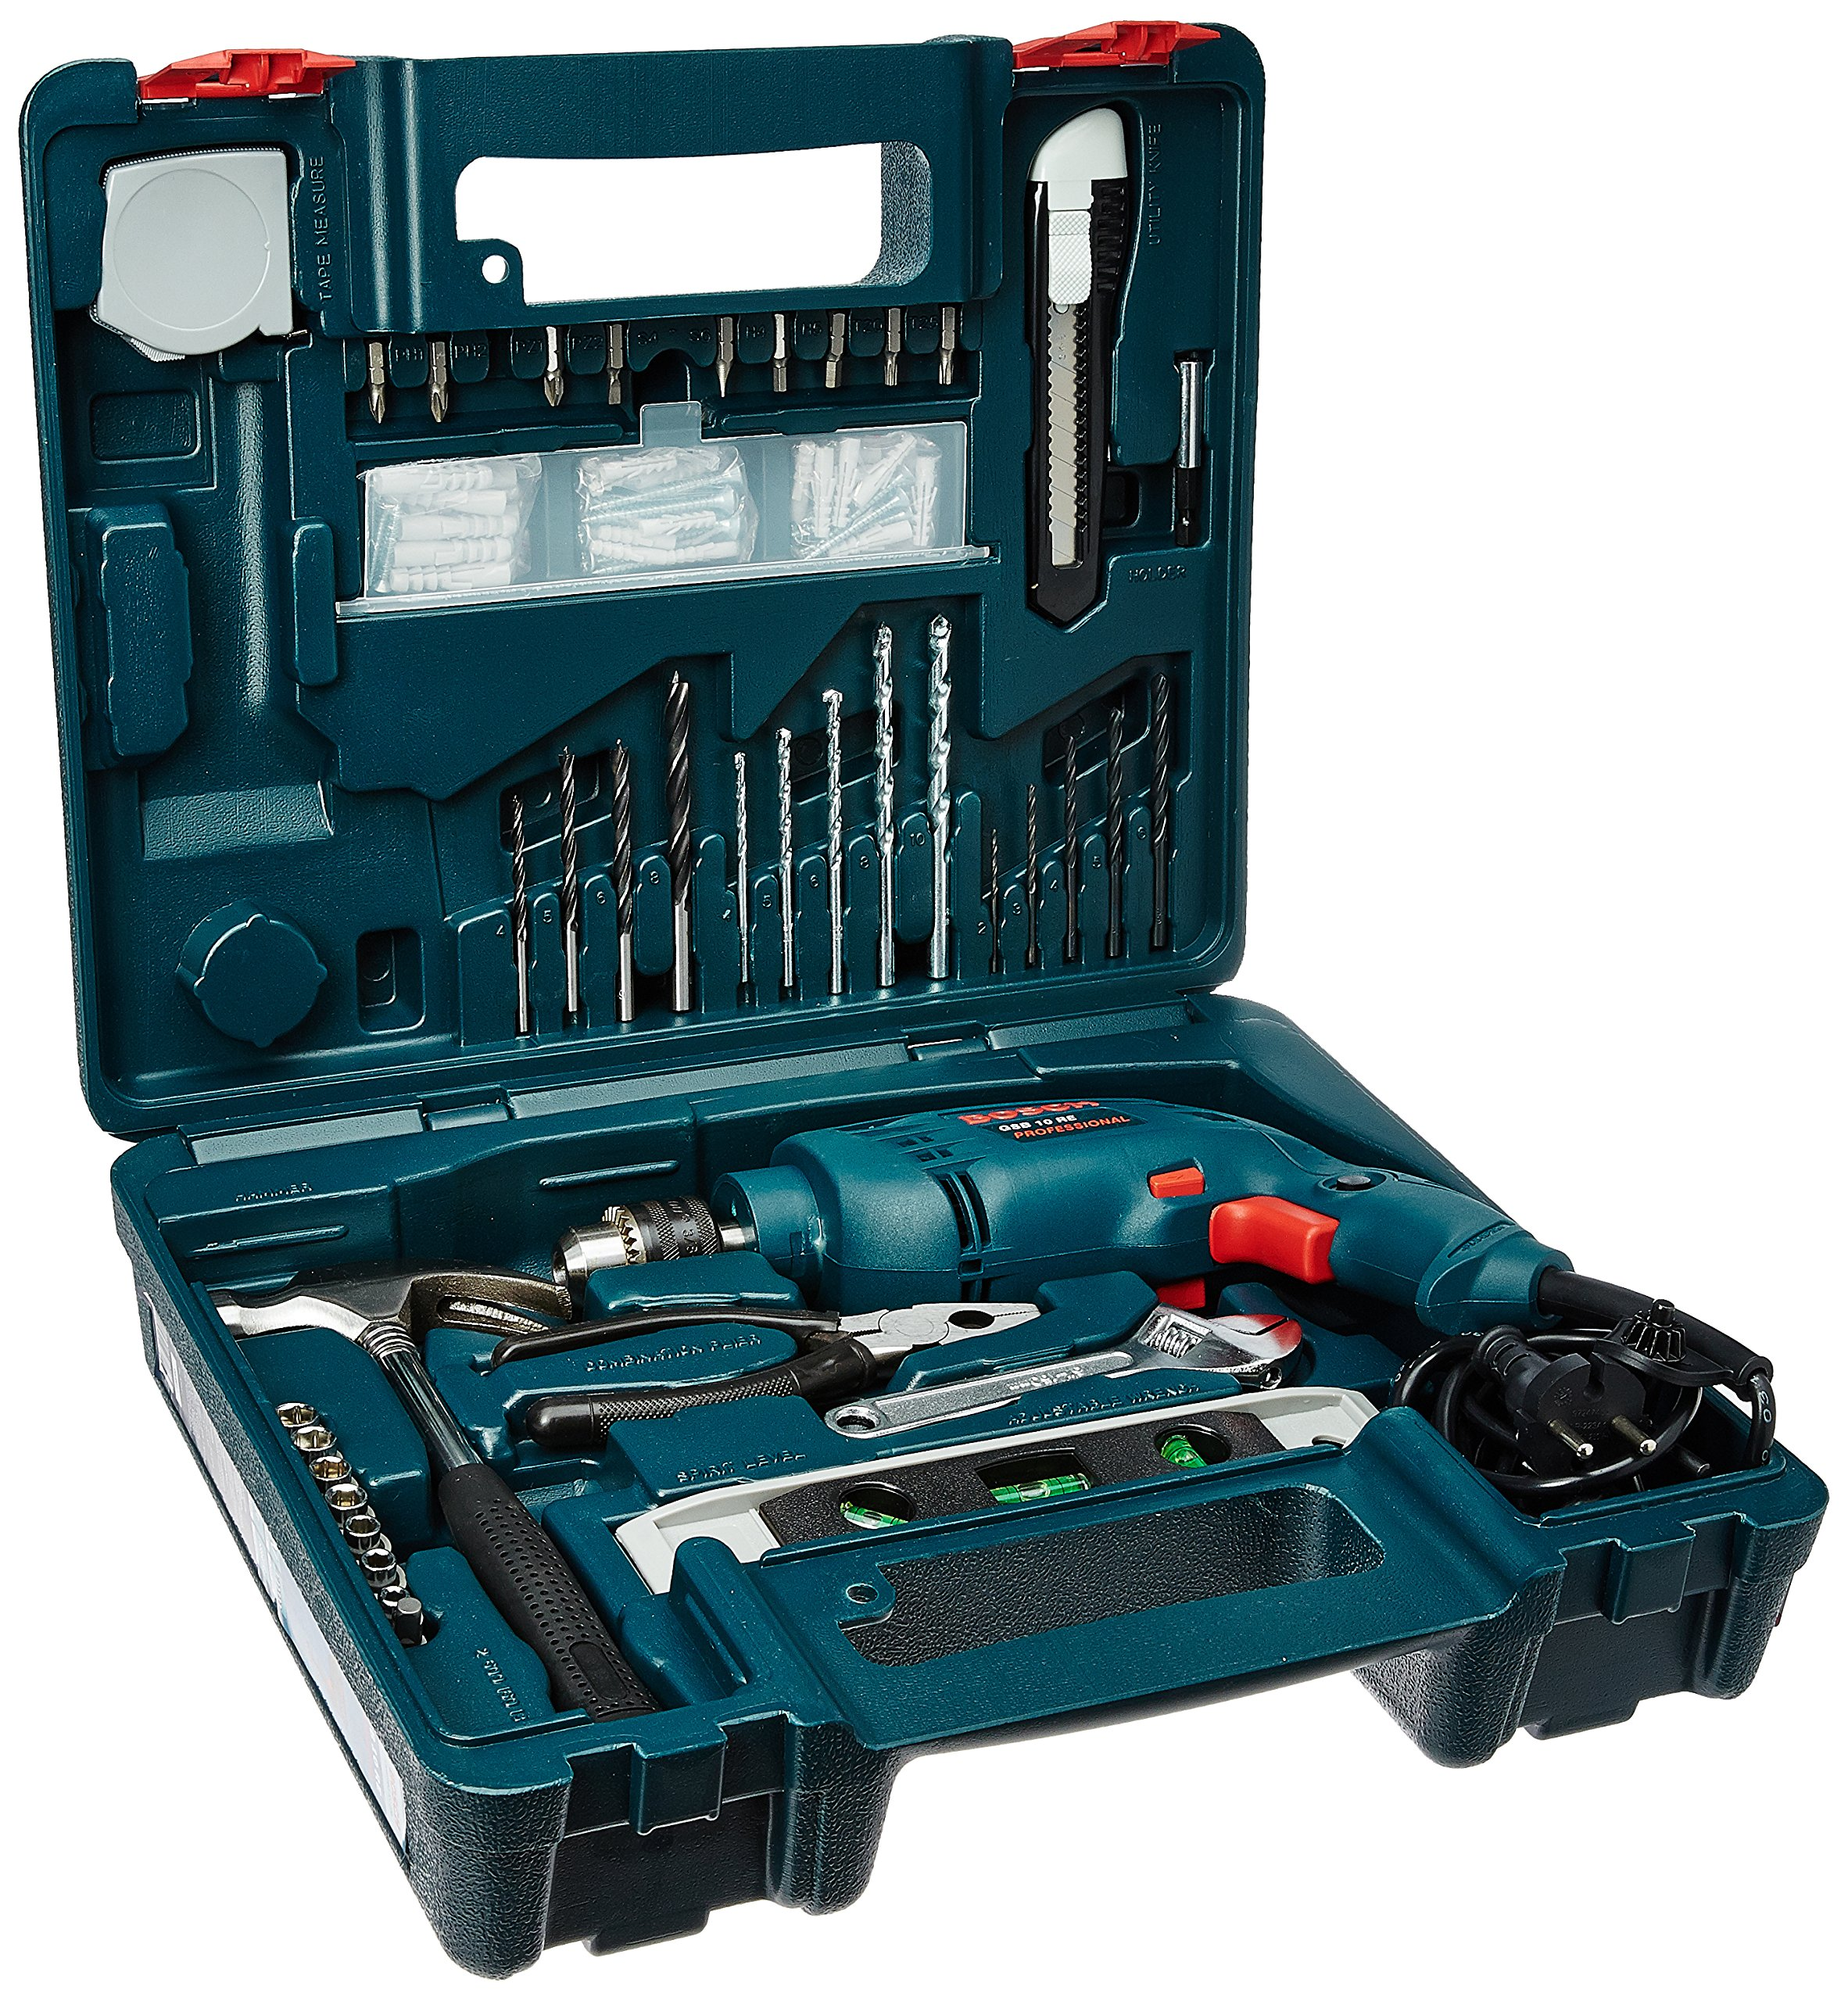 Bosch GSB 500W 10 RE Professional Tool Kit, MS and Plastic (Blue, Pack of 100) product image